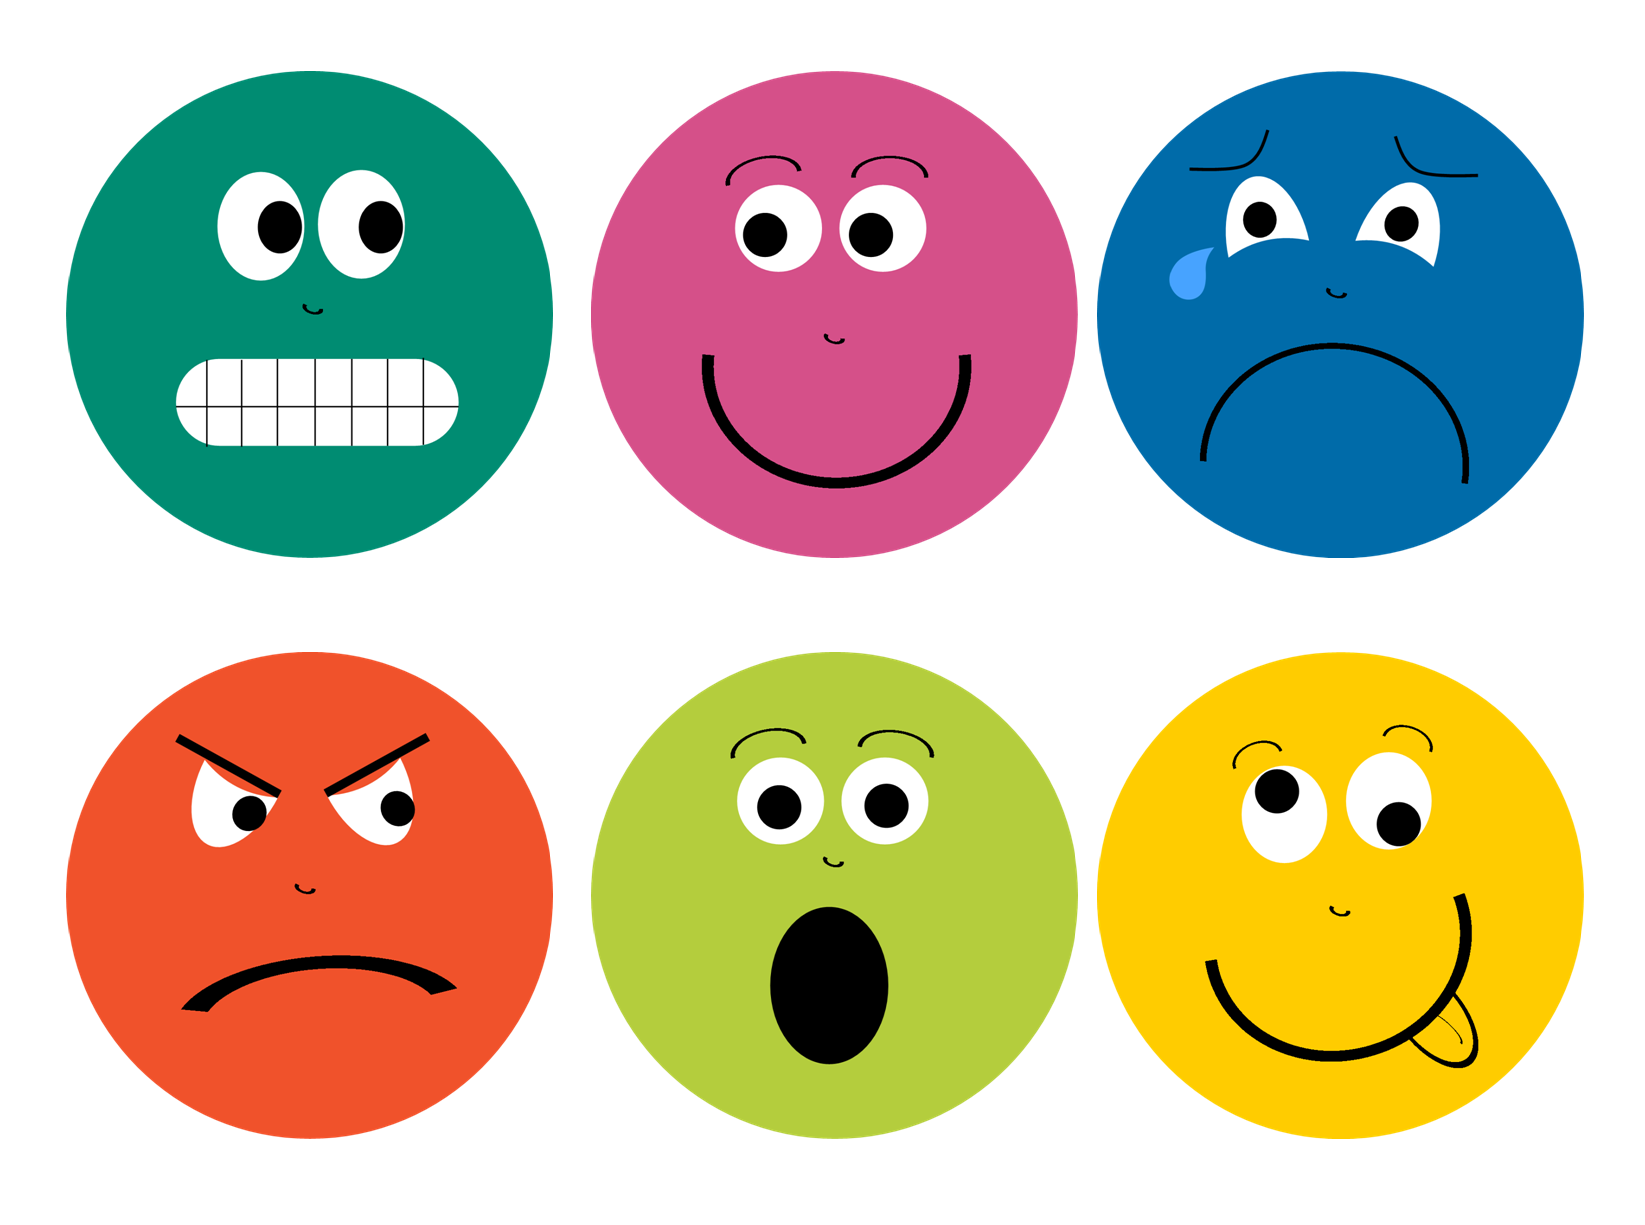 Worksheets Emotion Faces 1000 images about feelings on pinterest emotion faces and worksheets